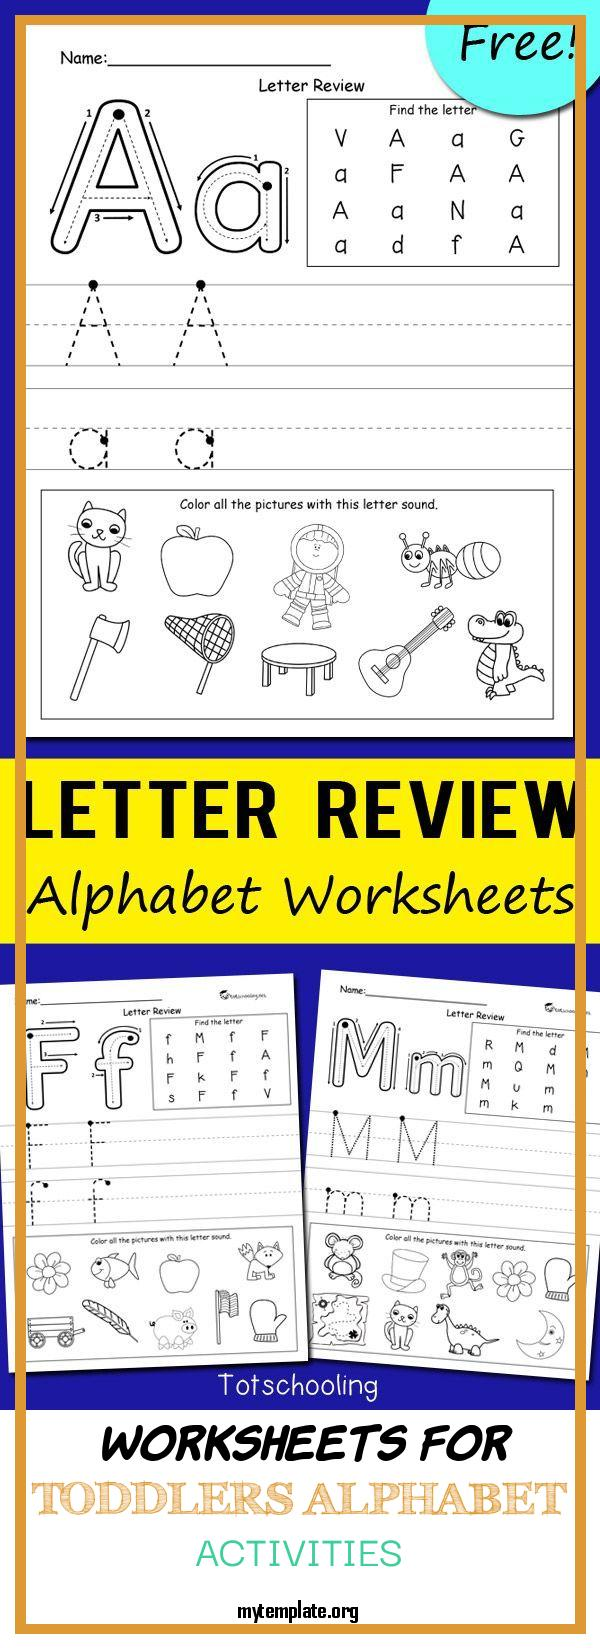 9 Worksheets For Toddlers Alphabet Activities - Free Templates